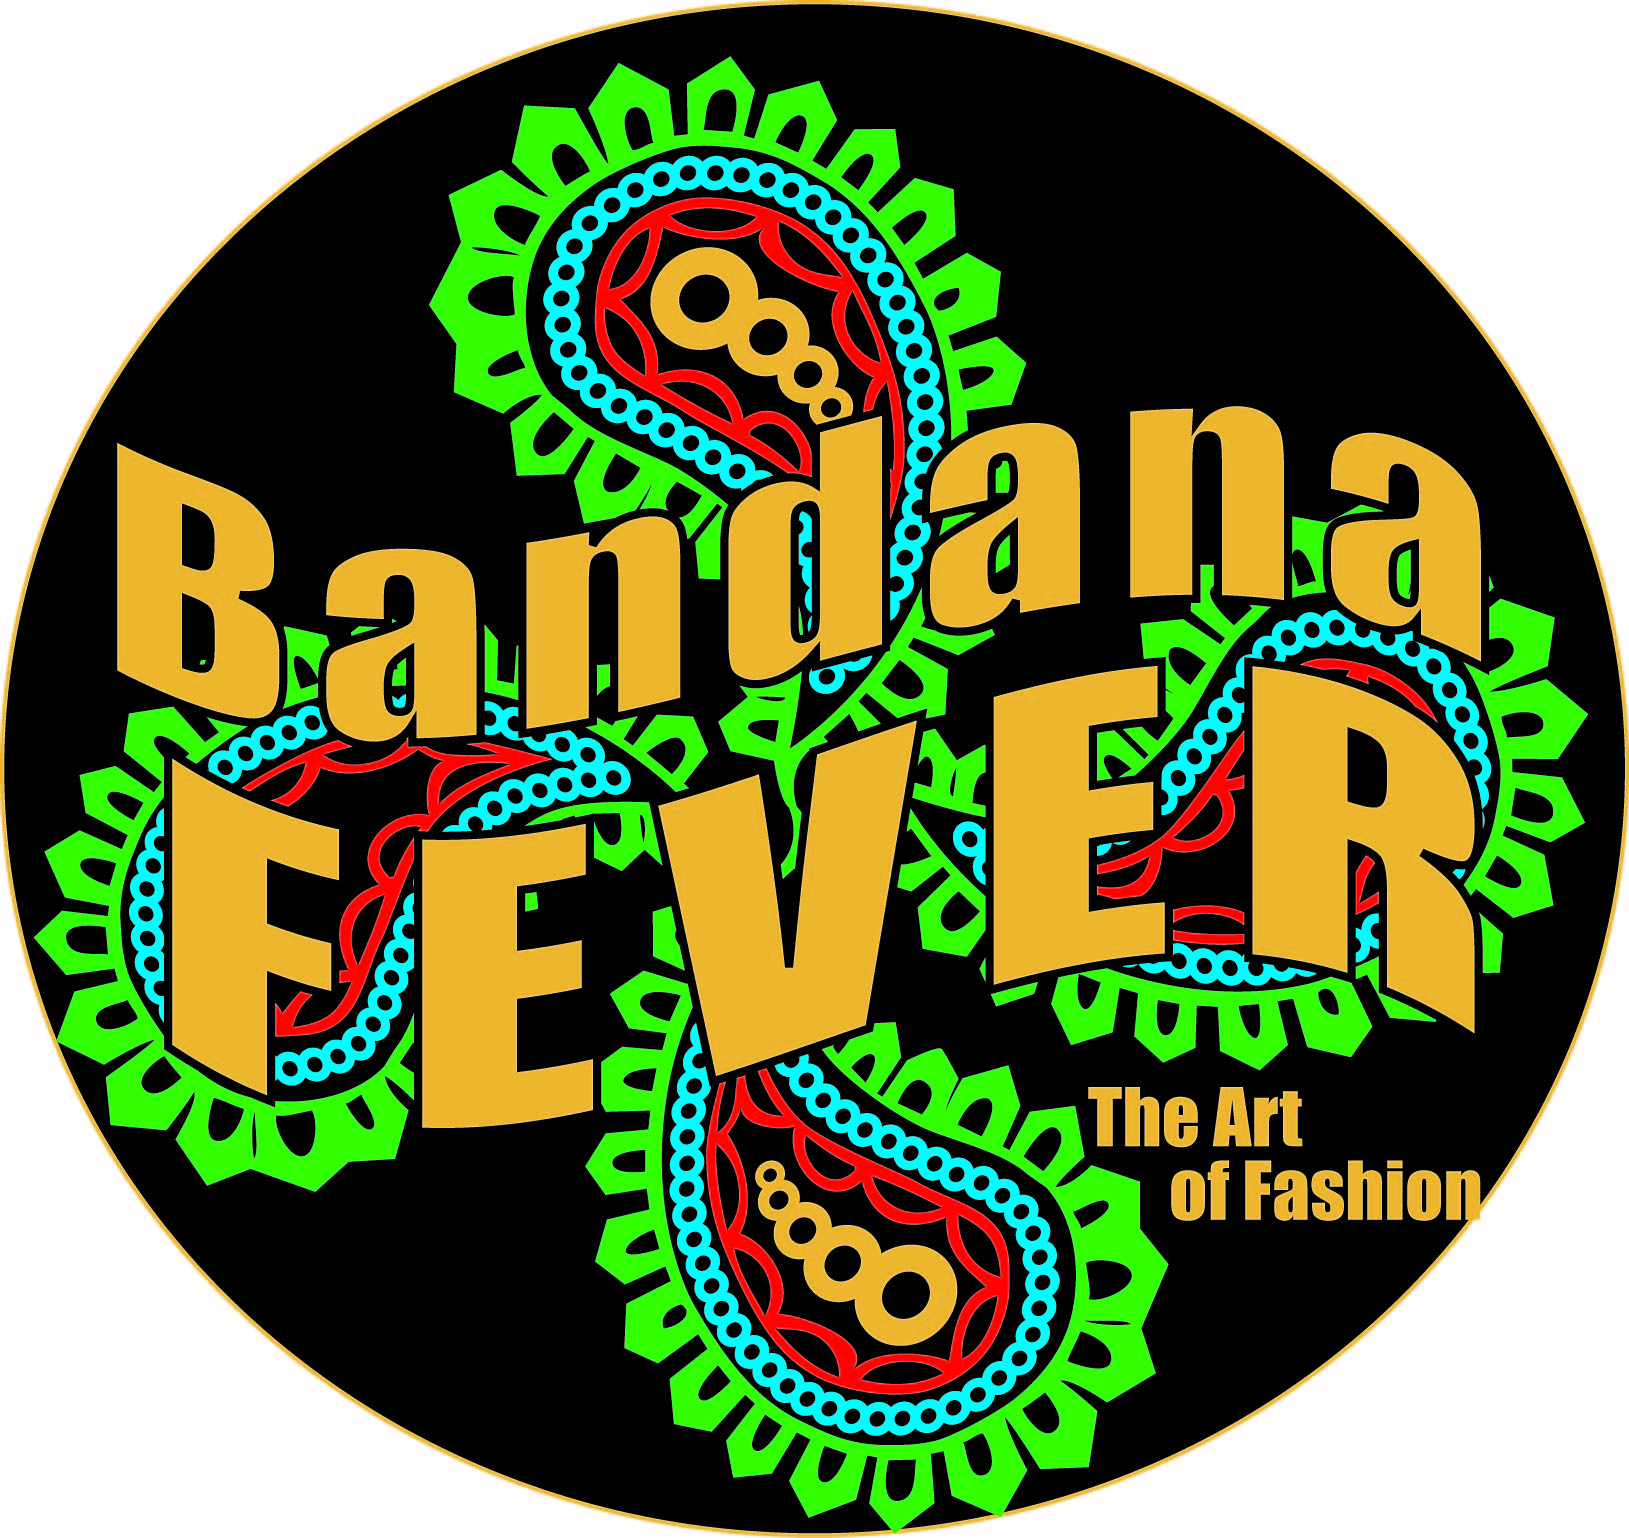 Shop Custom Shoes at Bandana Fever